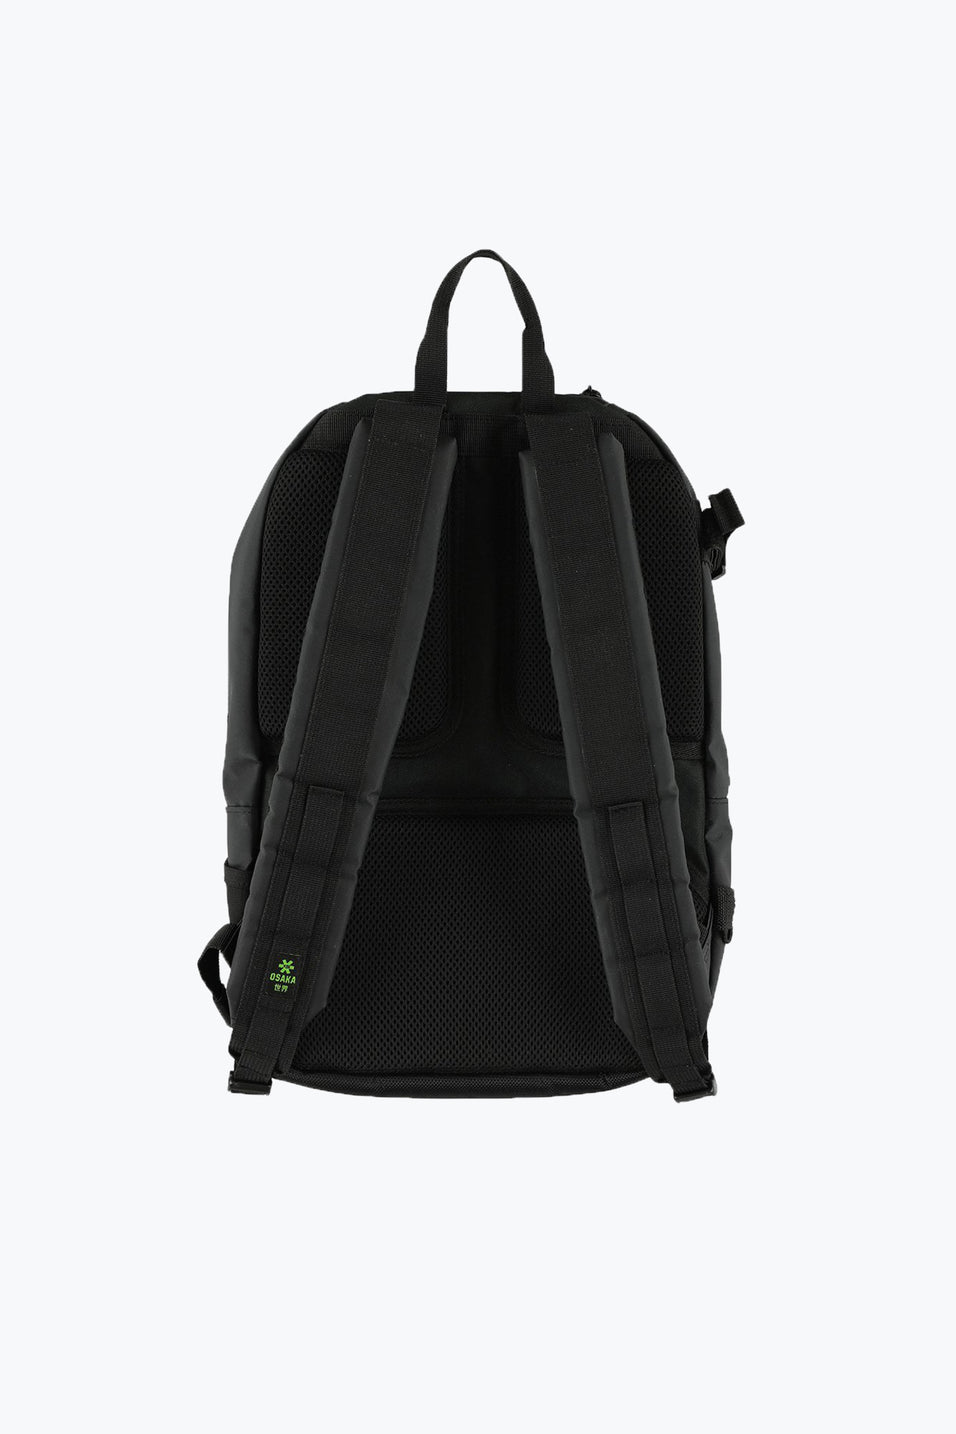 Osaka x Kaart Blanche Medium Backpack - Black